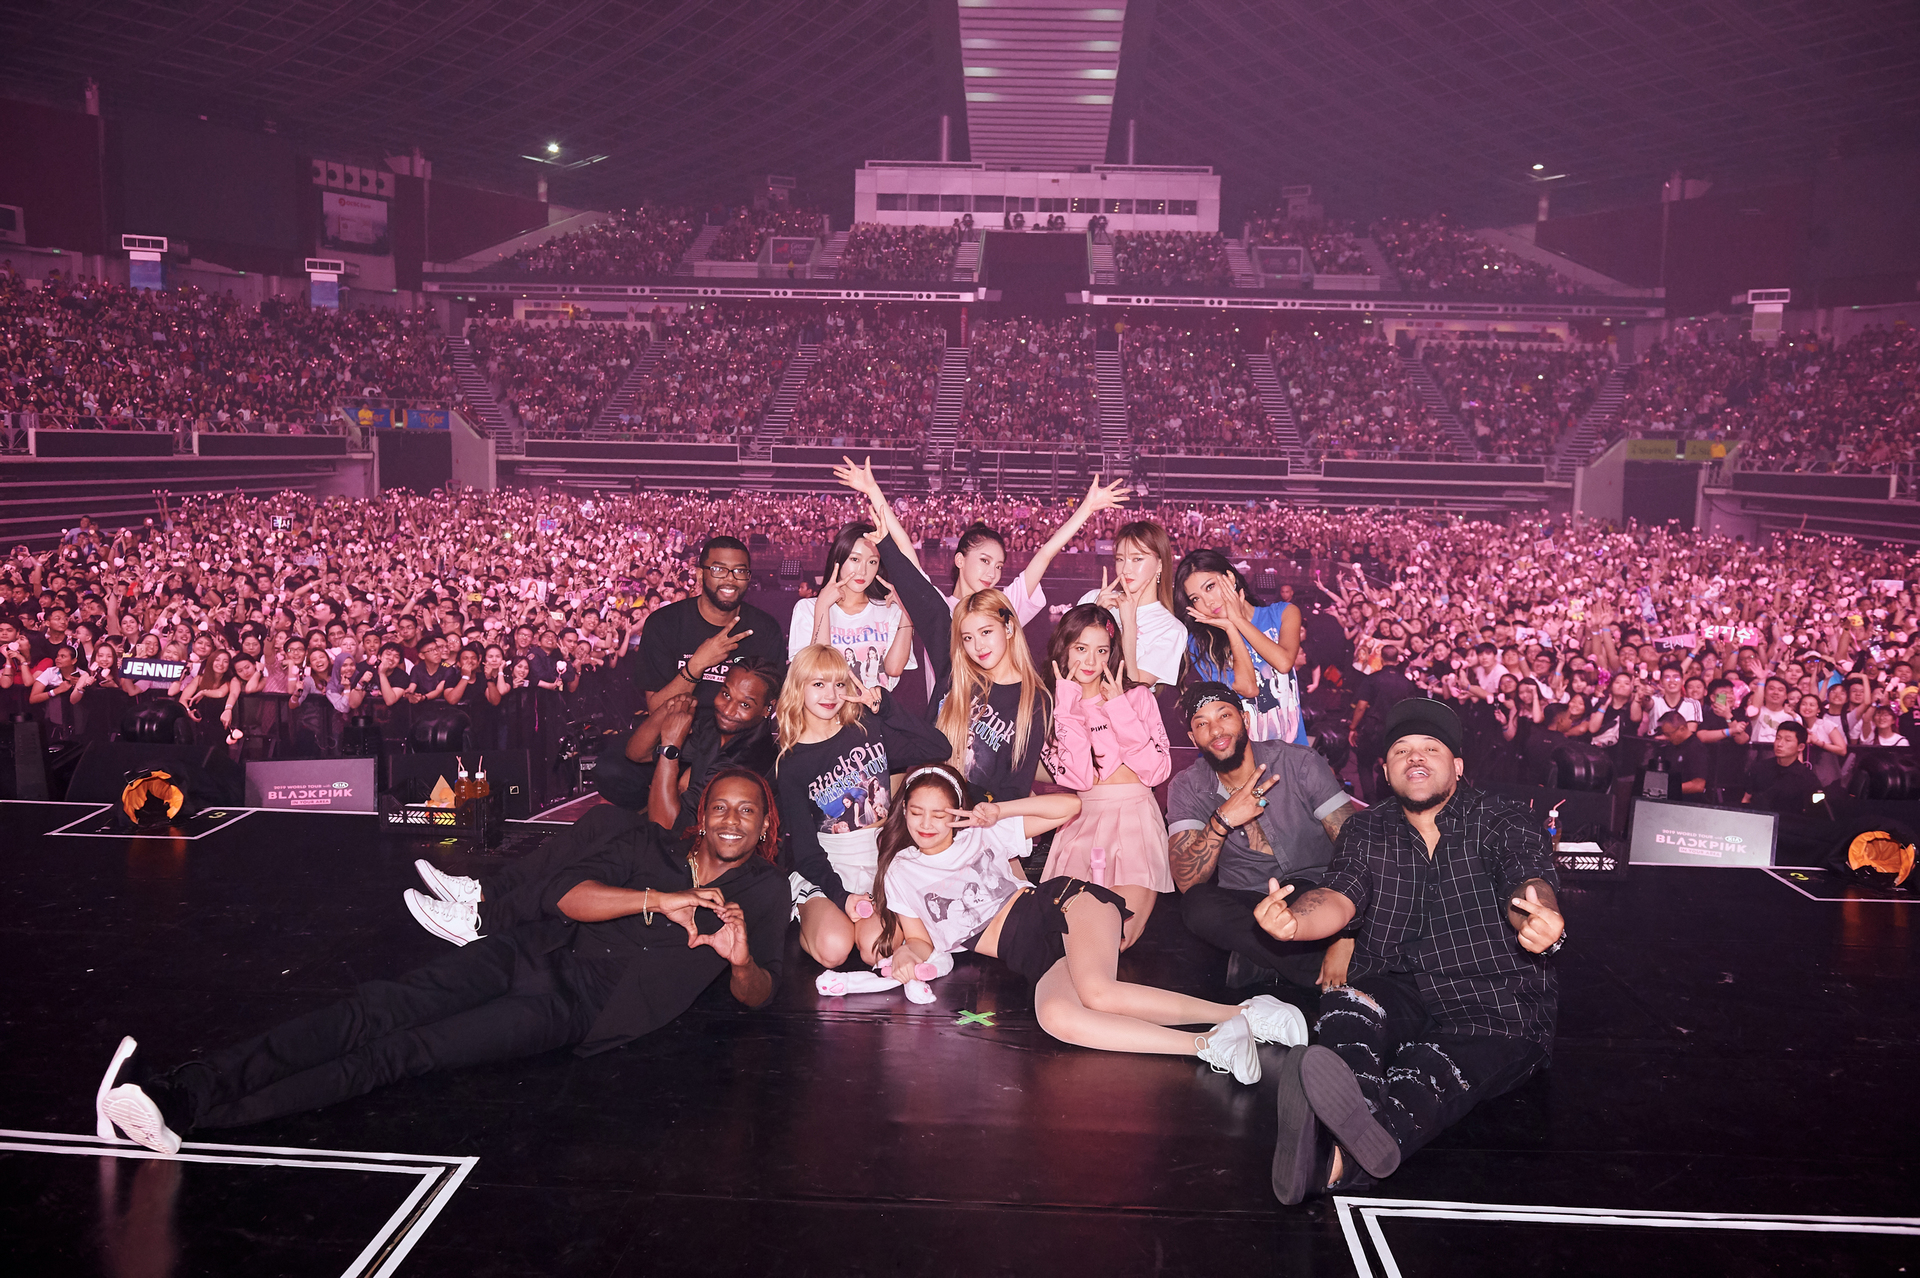 BLACKPINK proves its revolutionary appeal at debut Singapore